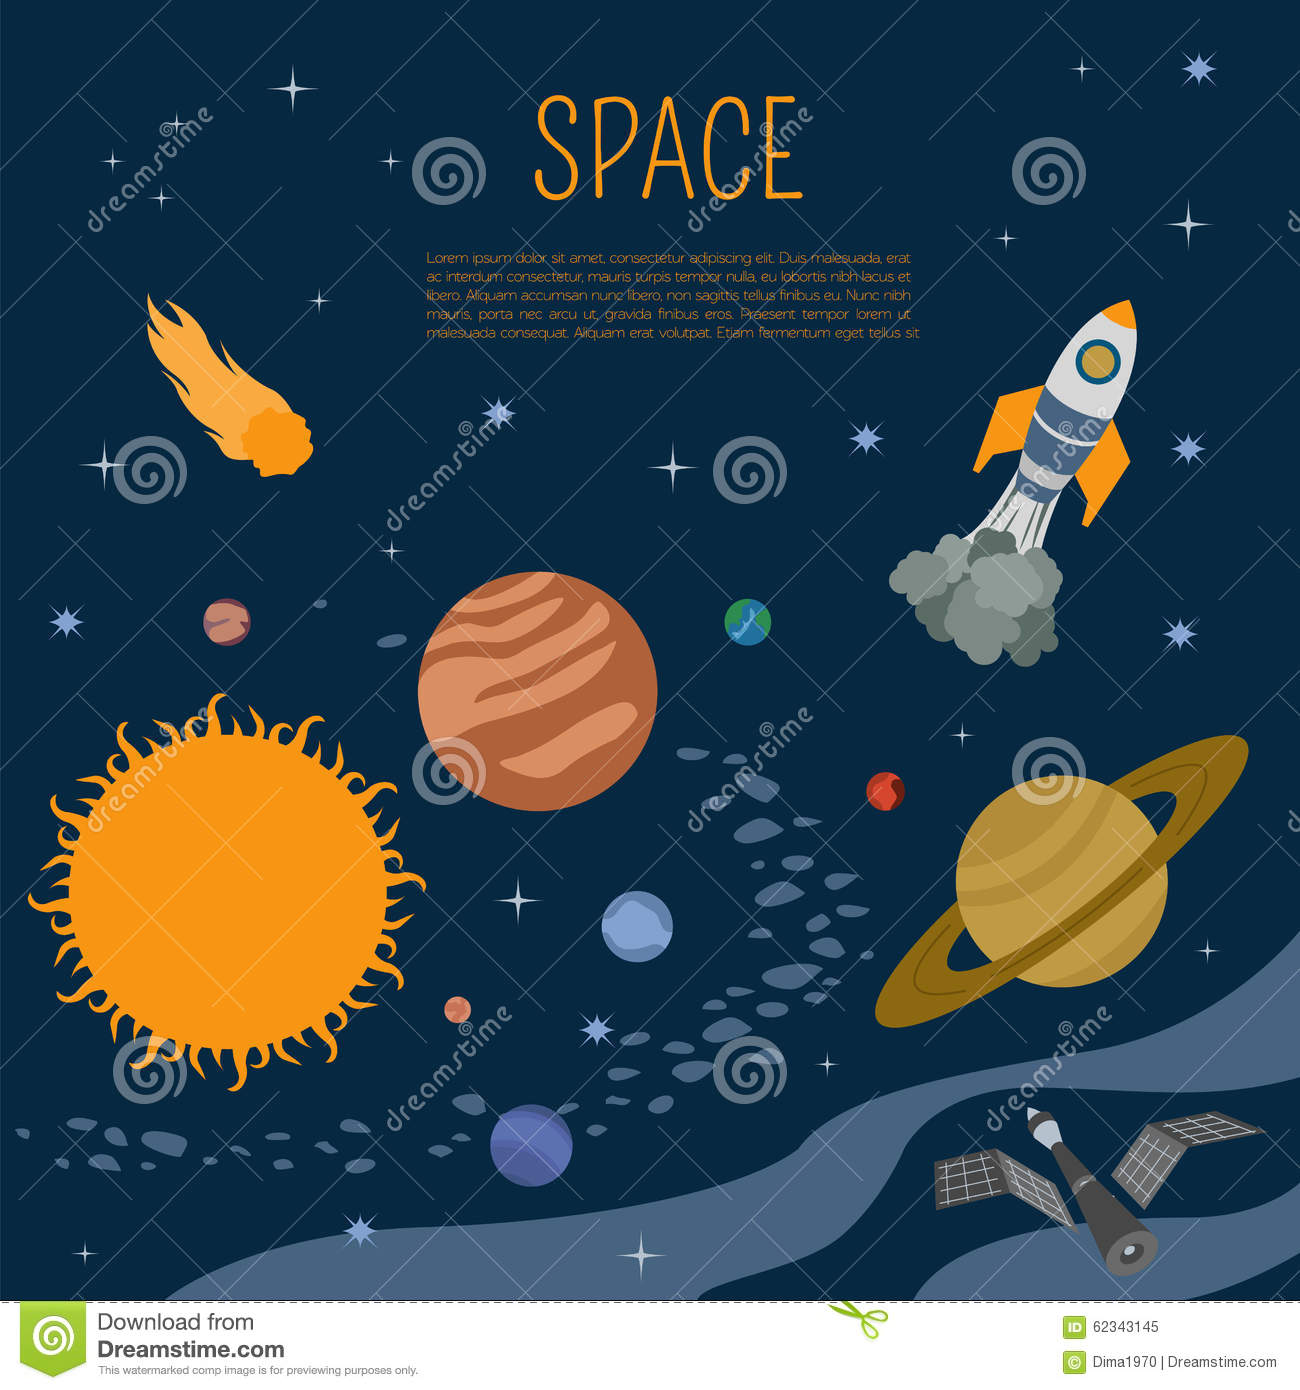 Space universe graphic design infographic template stock for Space poster design